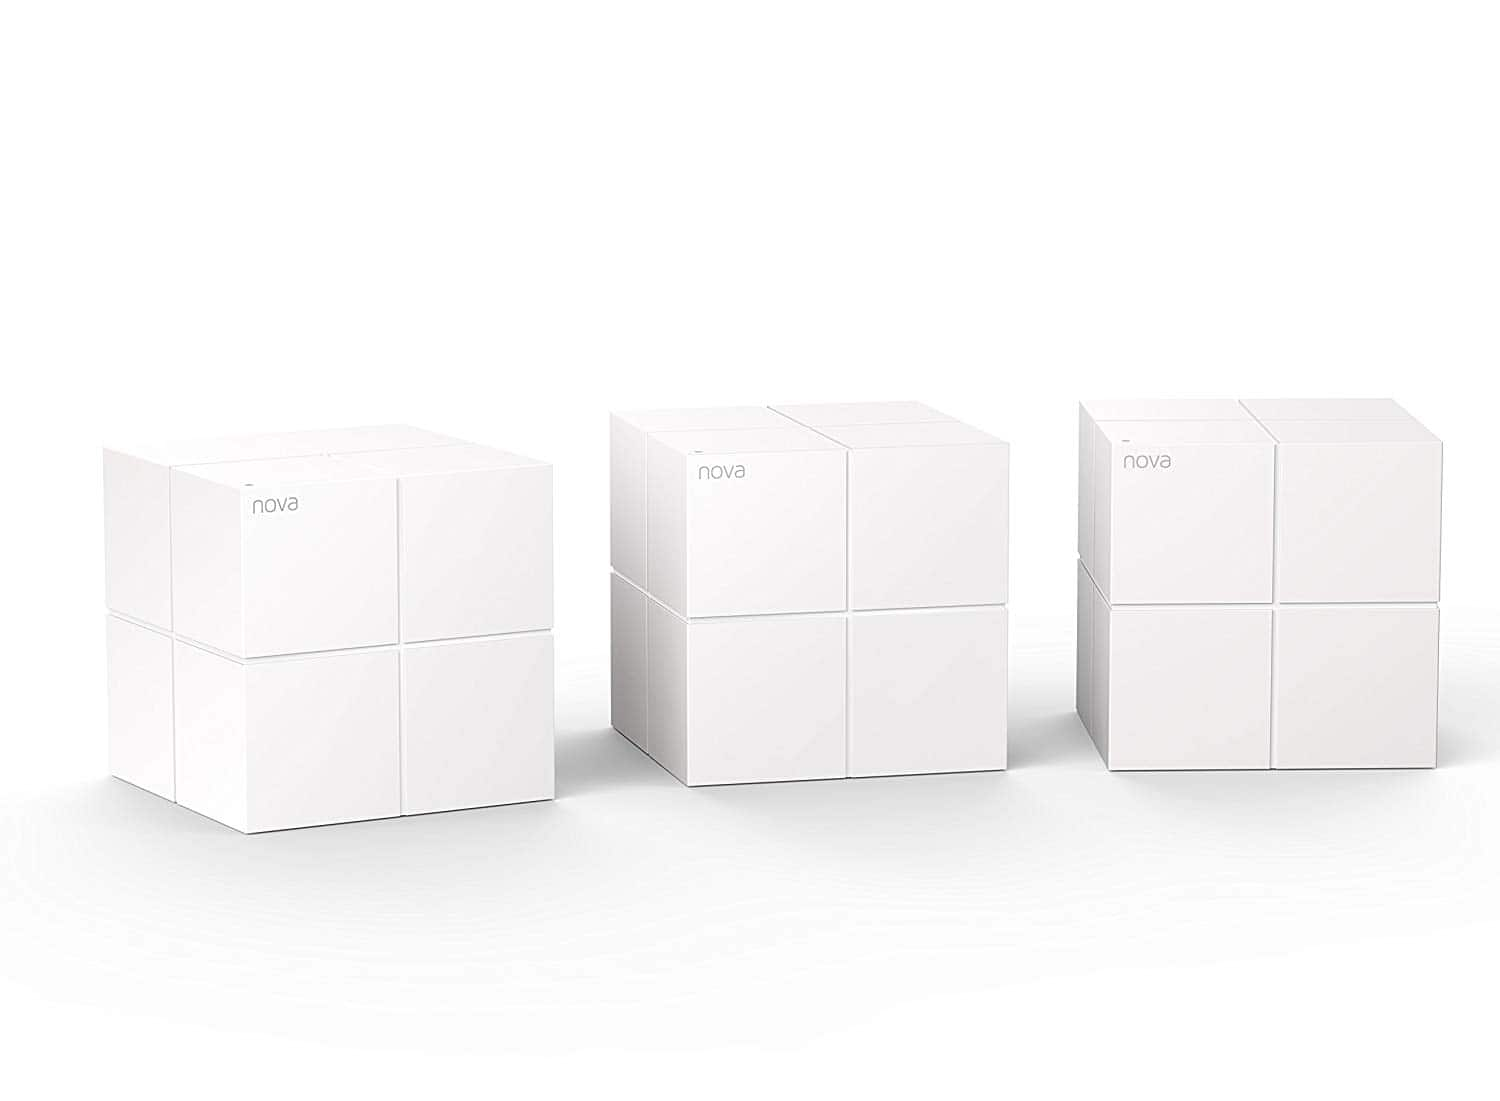 Amazon Tenda Nova MW6 3-pack Mesh Router WiFi System Coverage up to 6,000 sq. ft $159.99